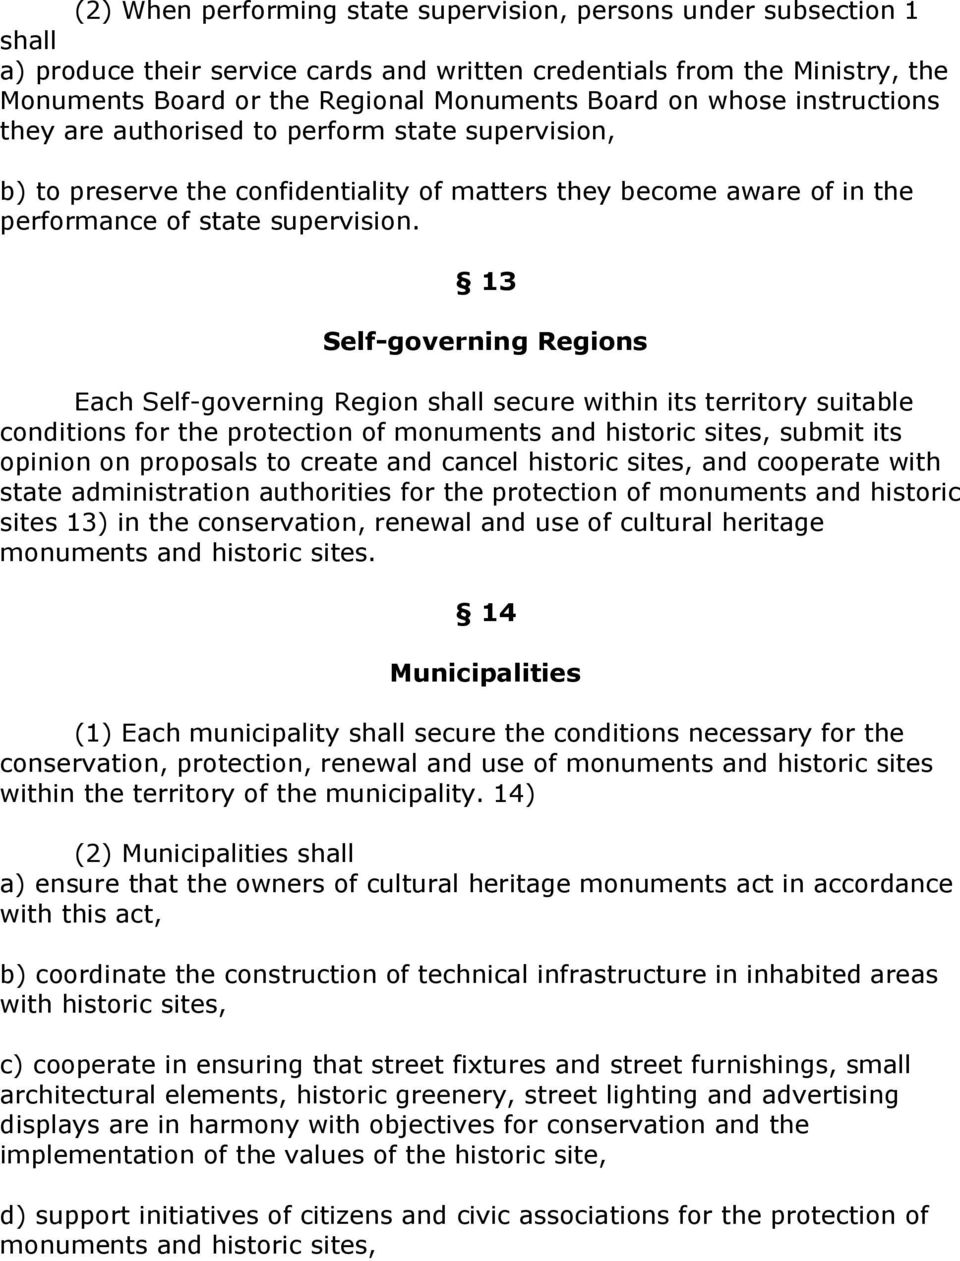 13 Self-governing Regions Each Self-governing Region shall secure within its territory suitable conditions for the protection of monuments and historic sites, submit its opinion on proposals to